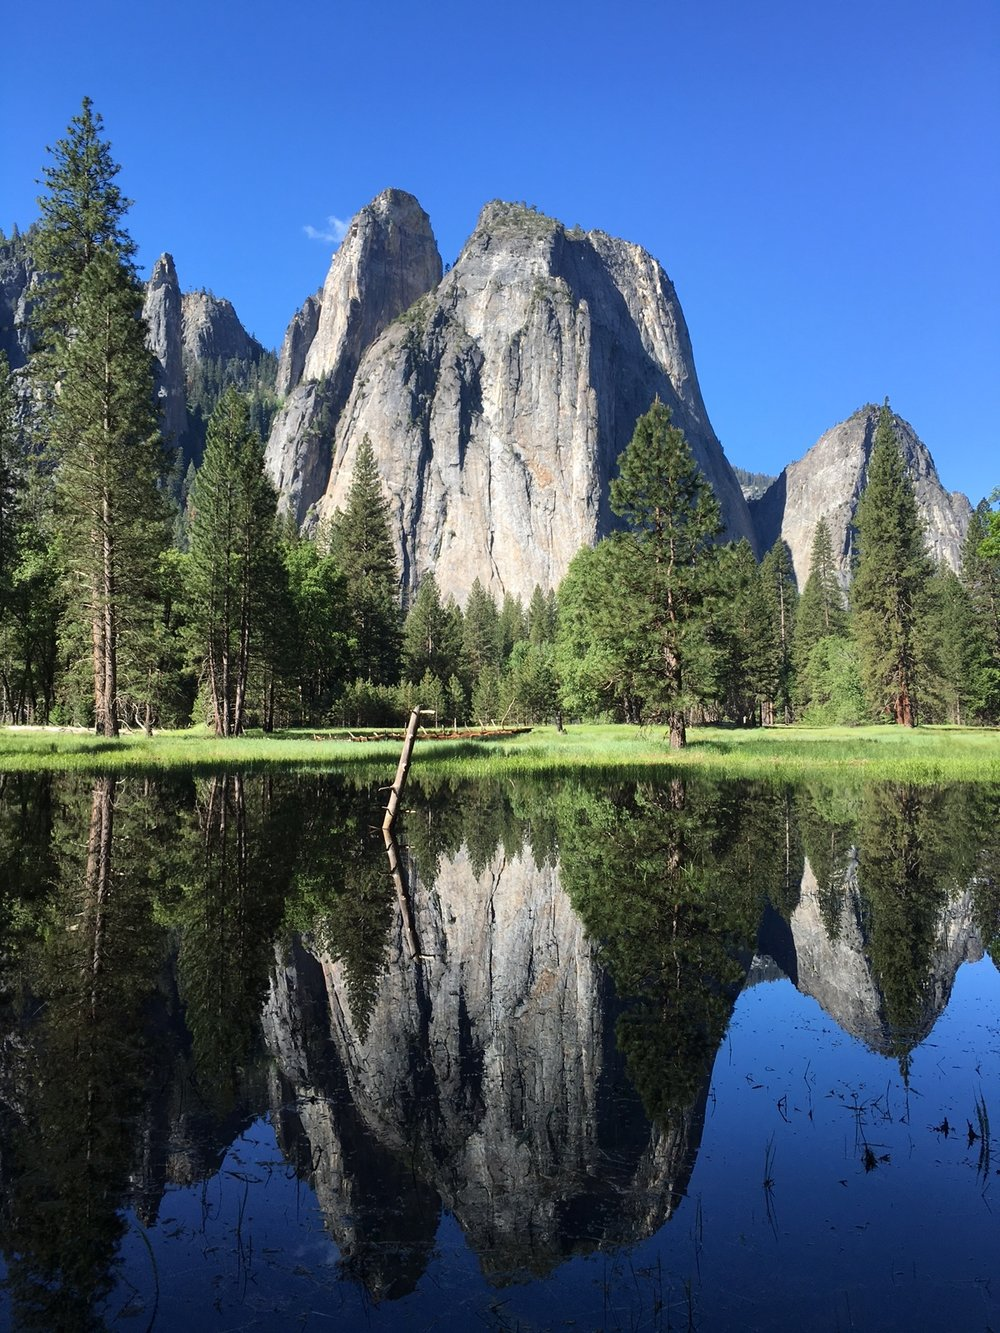 Granite formations reflect in waters of the Yosemite Valley floor in beautiful Yosemite National Park in California. Photo credit: Jonathan Irish